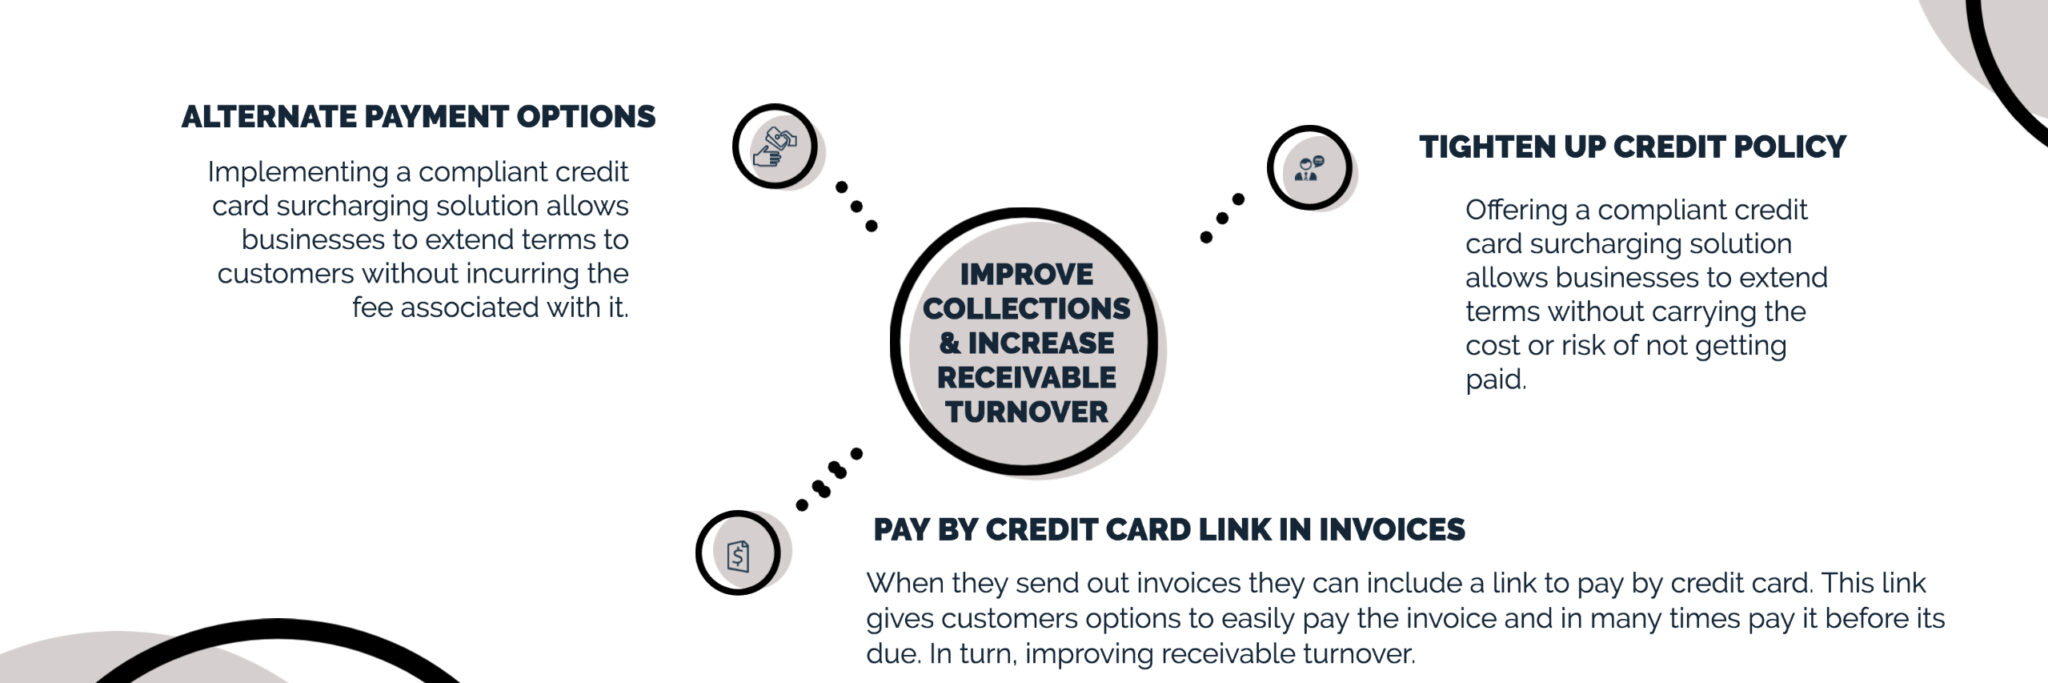 Infographic Improve Collections and increase receivable turnover